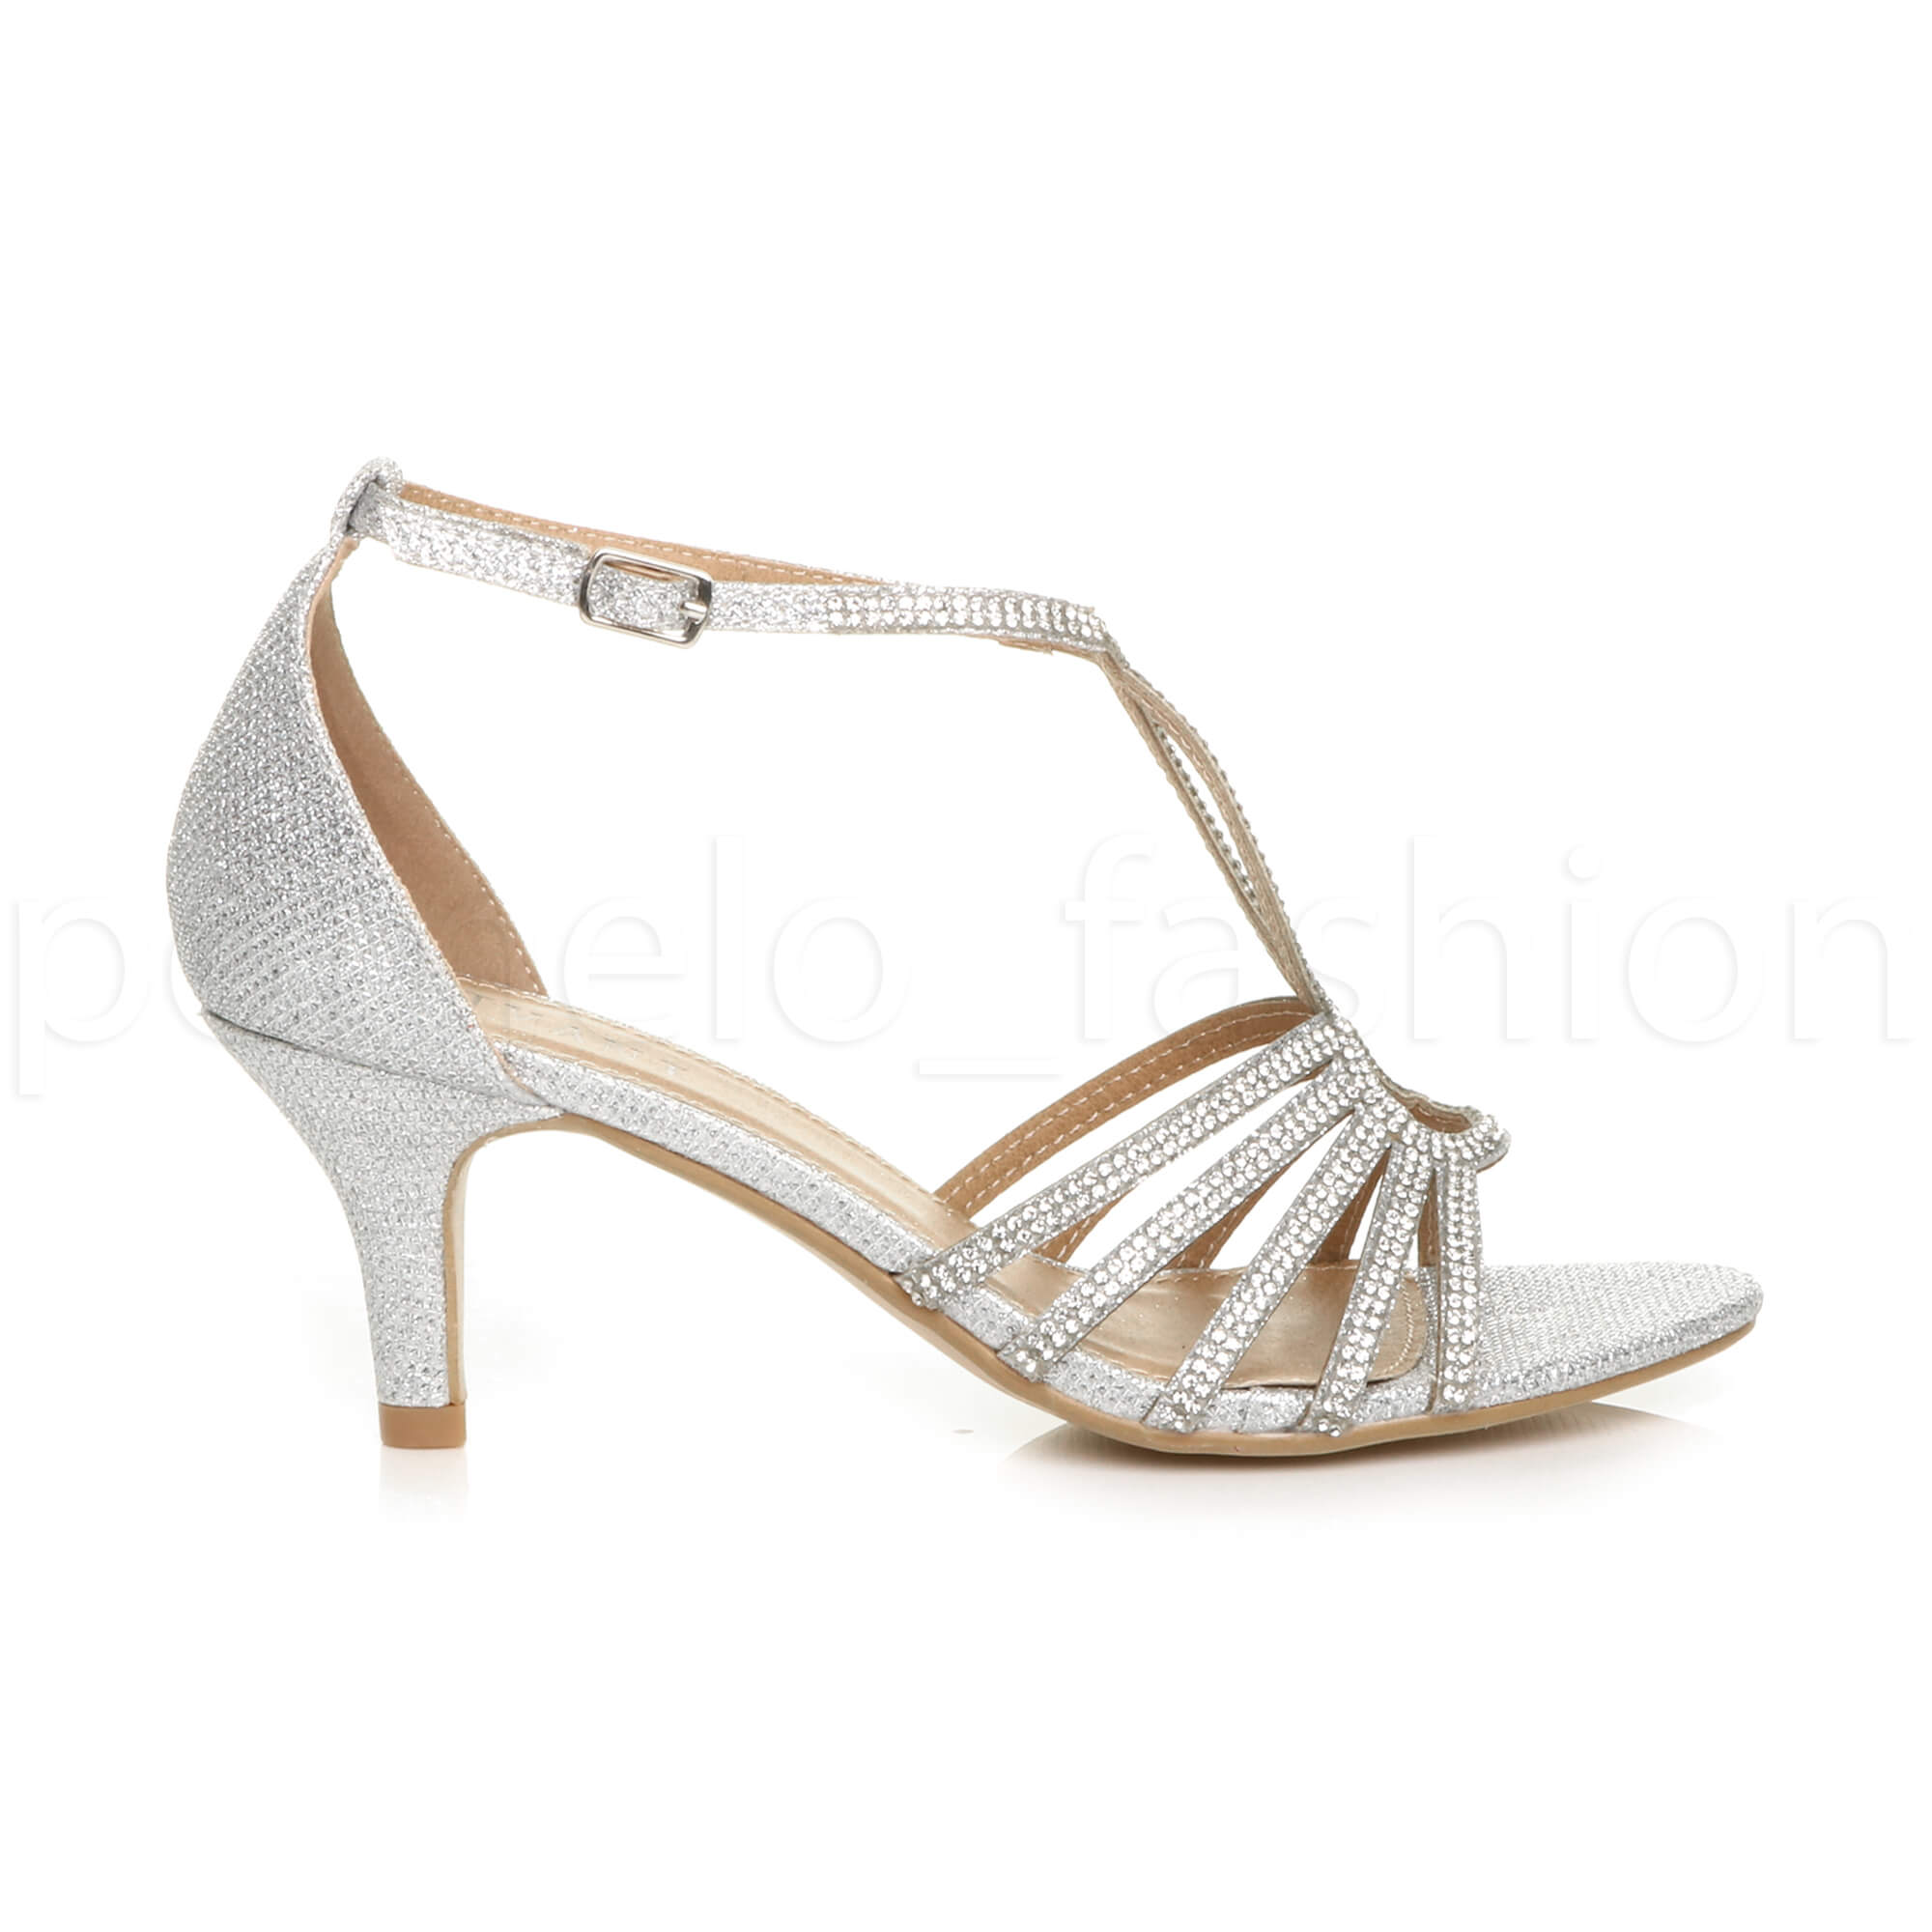 WOMENS LADIES MID HEEL GEMS GLITTER STRAPPY BRIDAL CUT OUT SANDALS ...